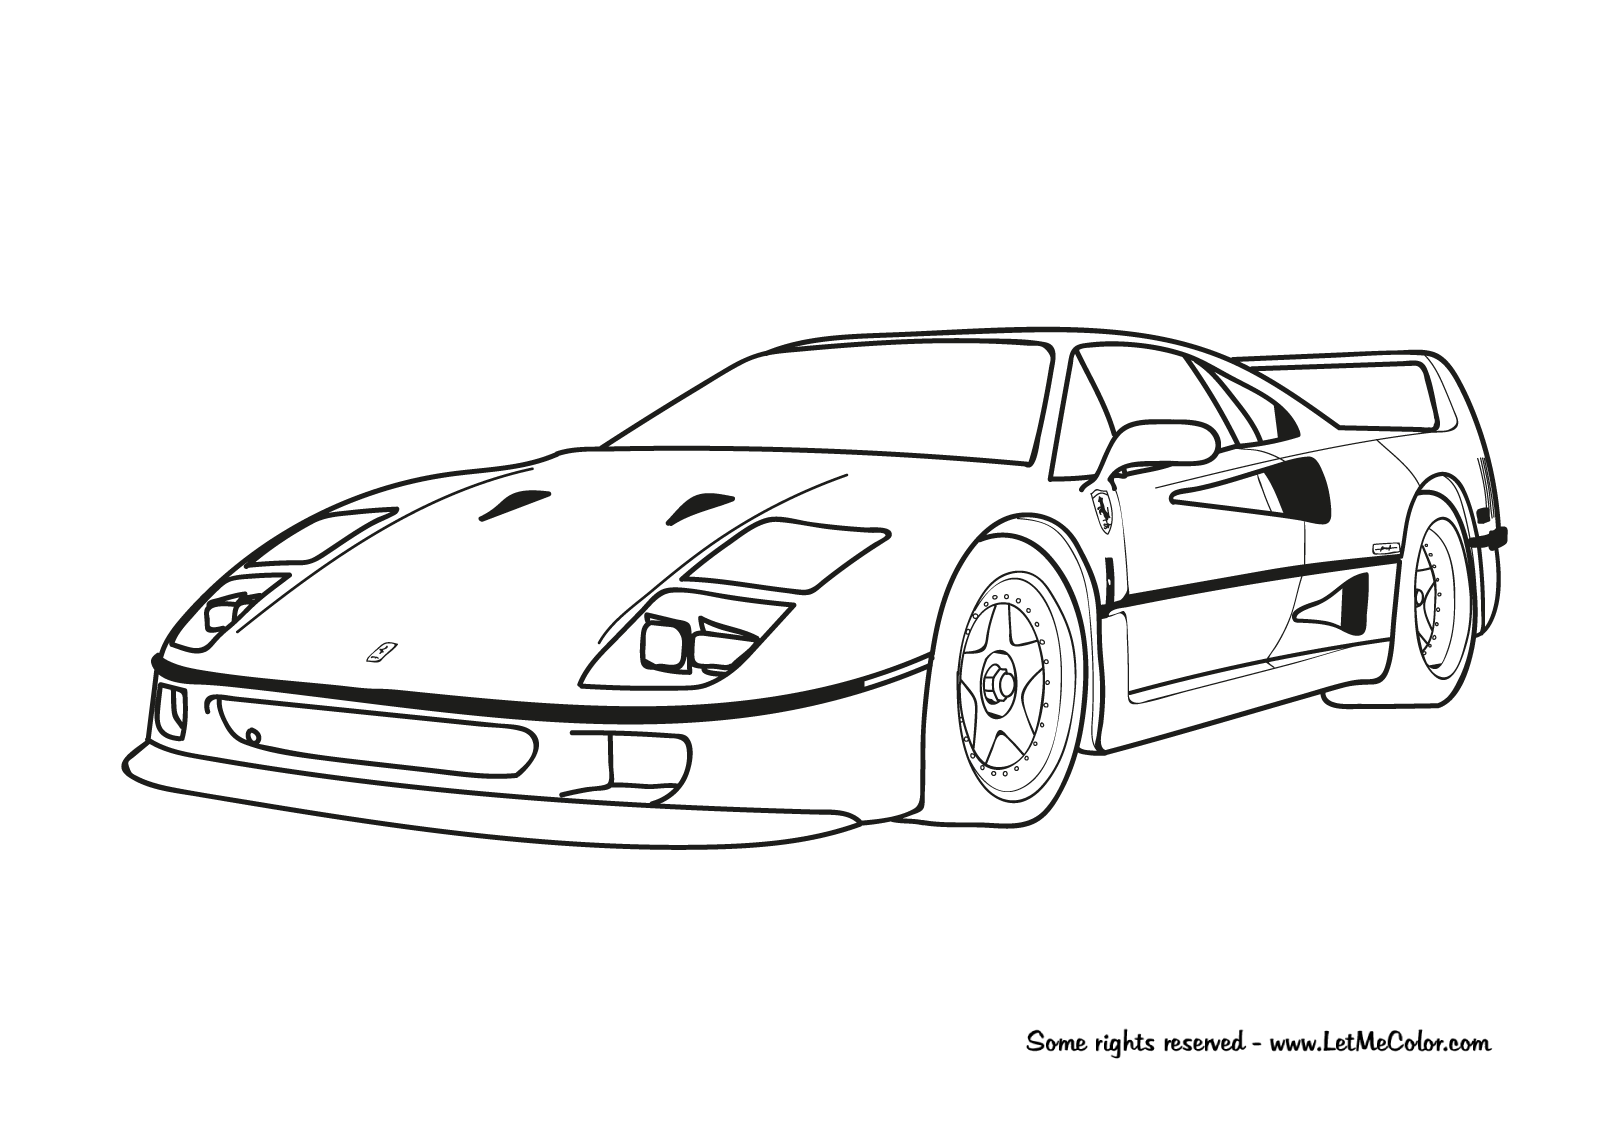 coloring pages ferrari cars sport ferrari cars coloring pages kids play color cars ferrari pages coloring